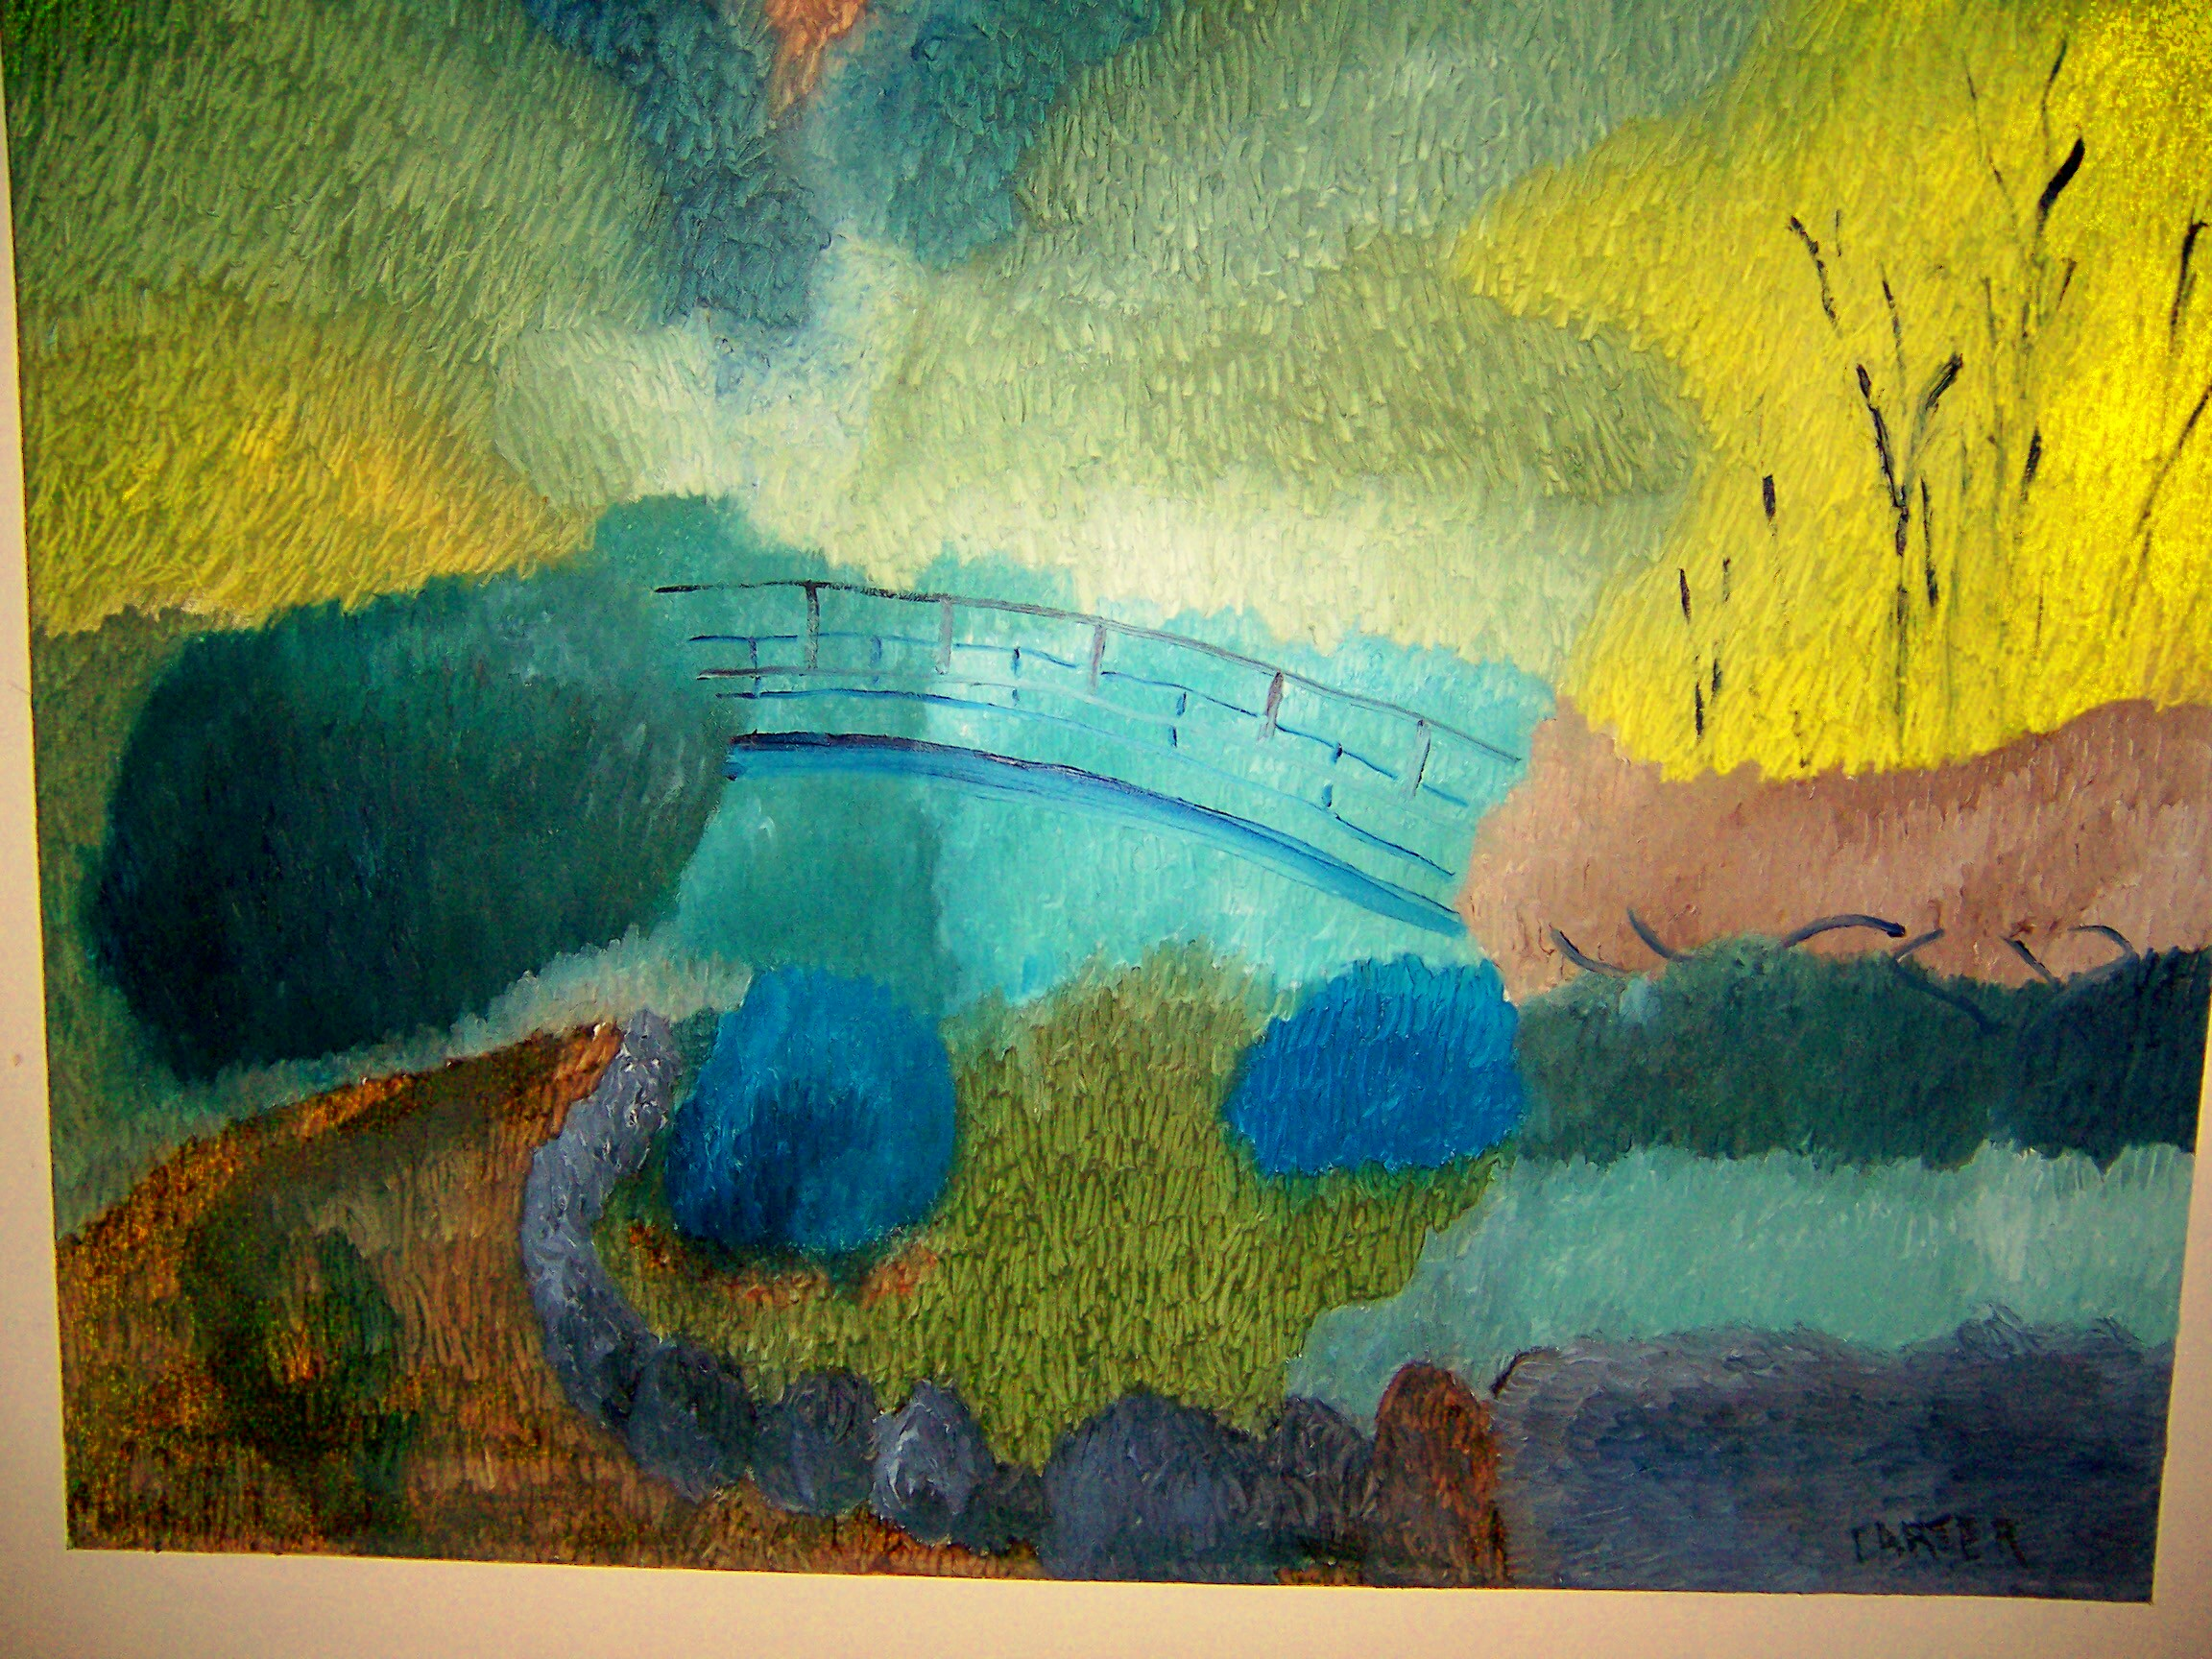 Japanese Garden Bridge, 24x30, $450